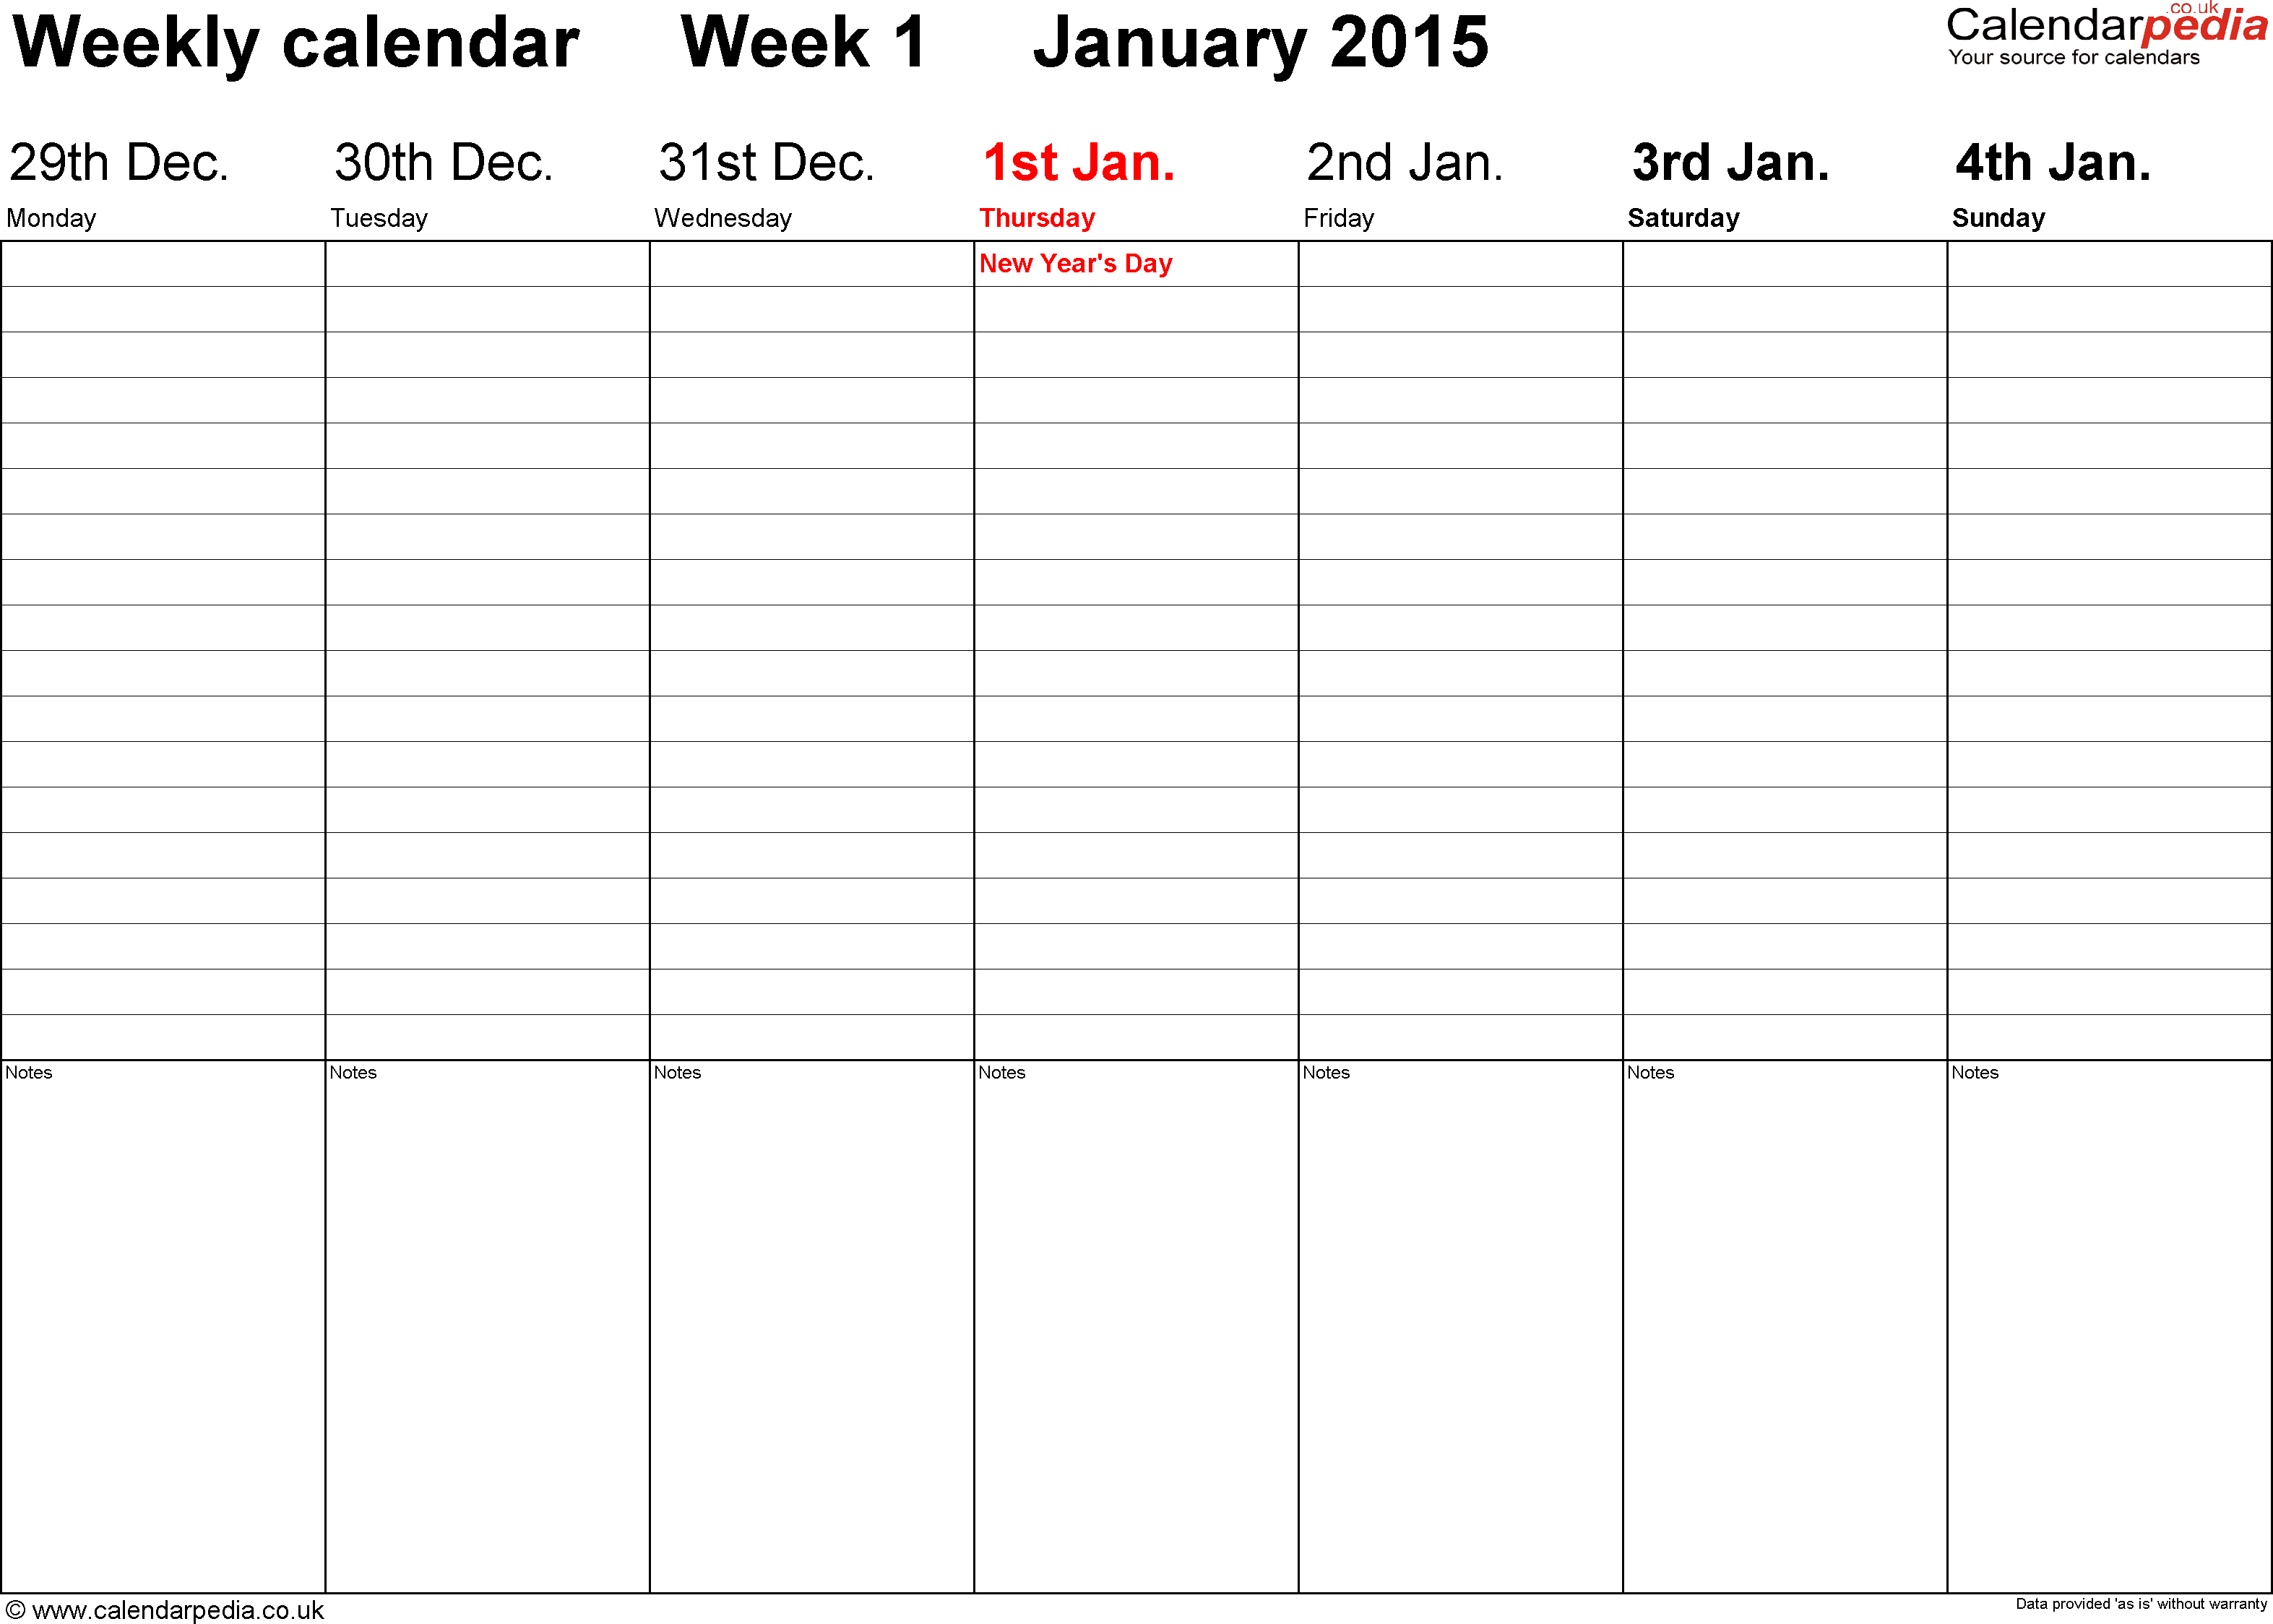 2 page weekly calendar template - weekly calendar 2015 uk free printable templates for pdf